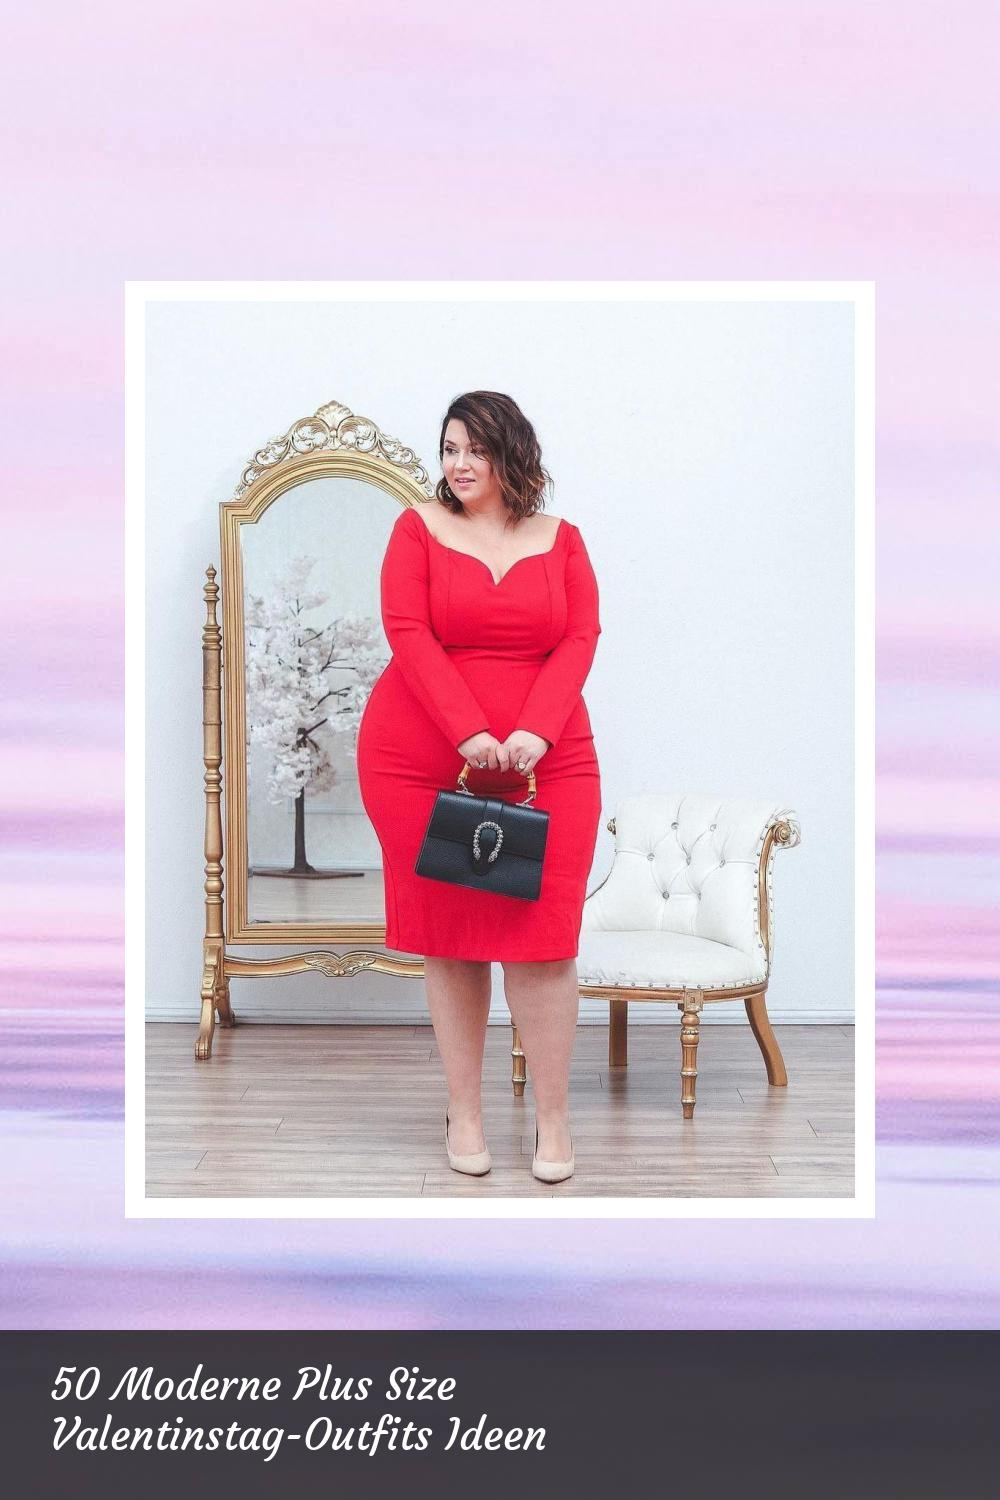 50 Moderne Plus Size Valentinstag-Outfits Ideen 3